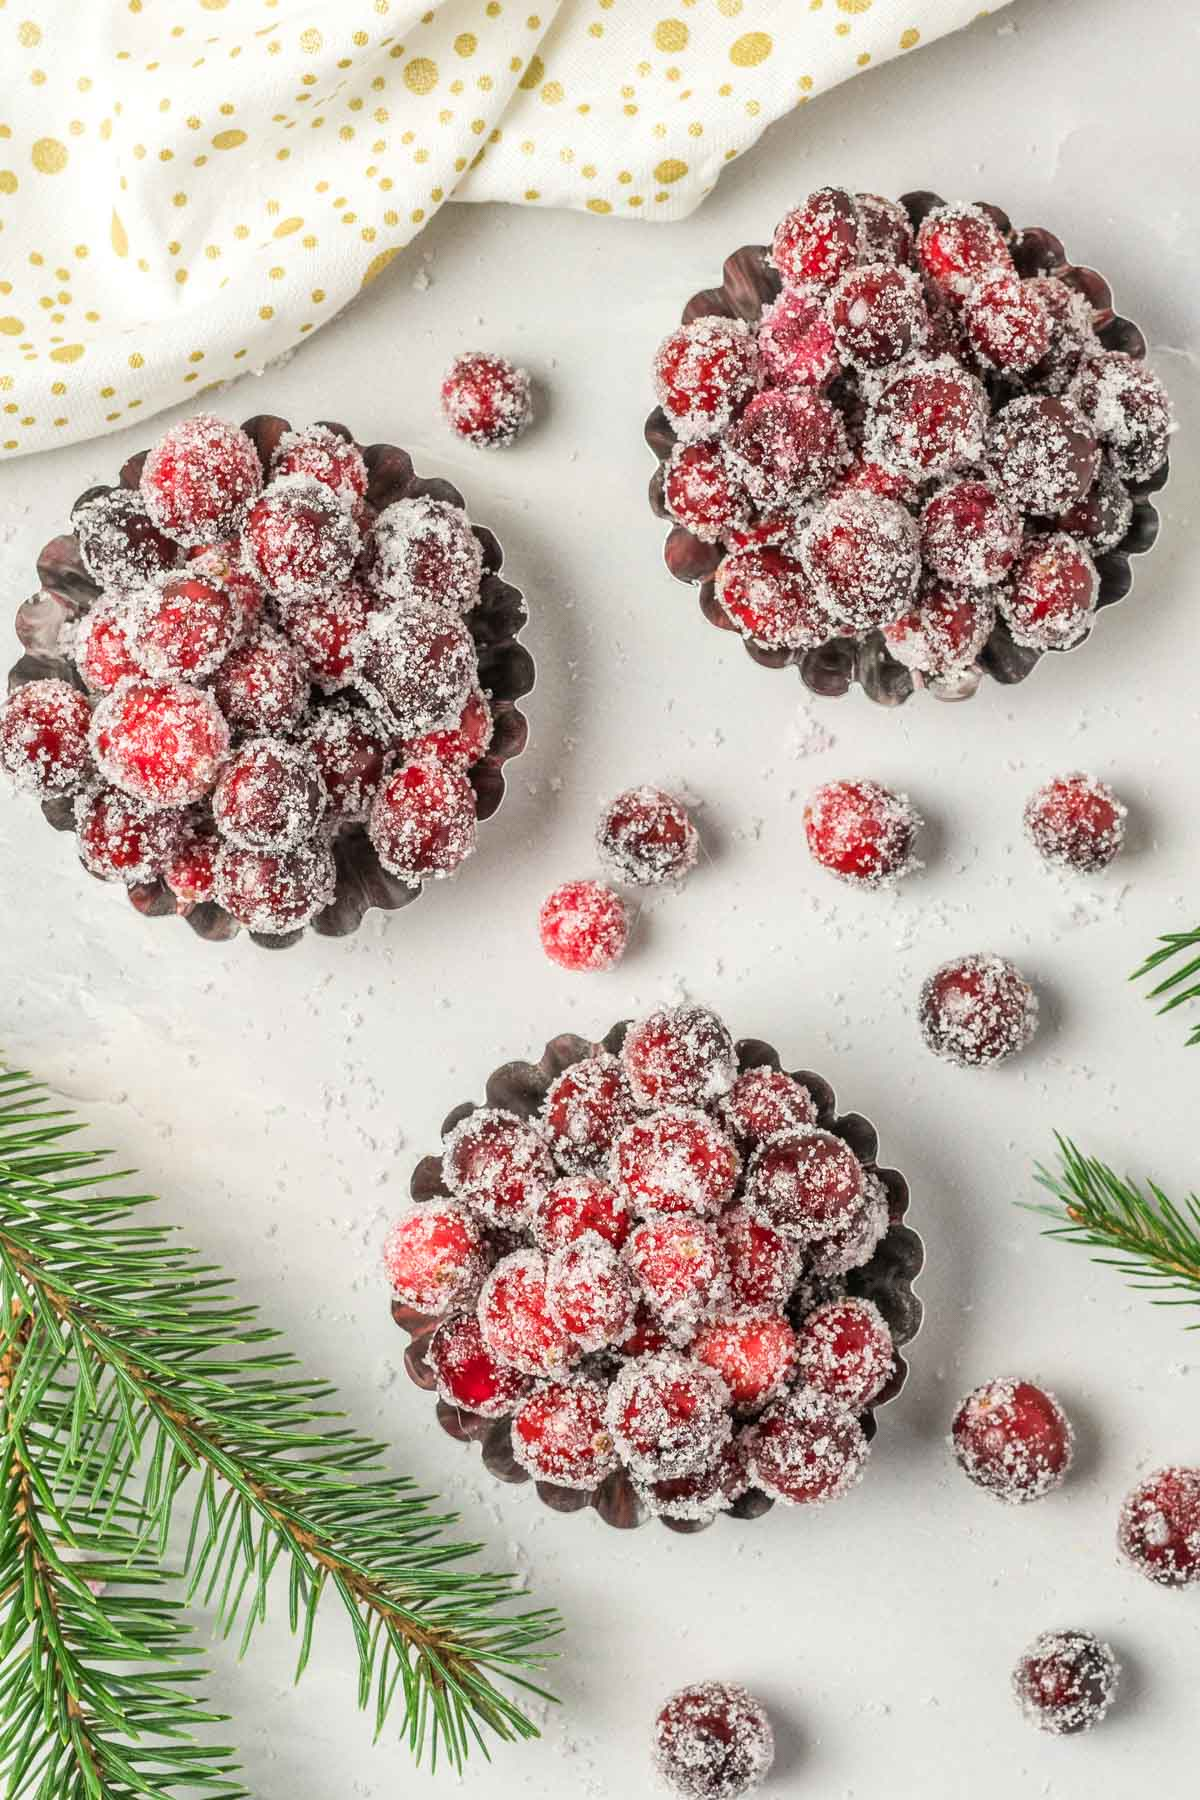 Candied cranberries in small tart tins.